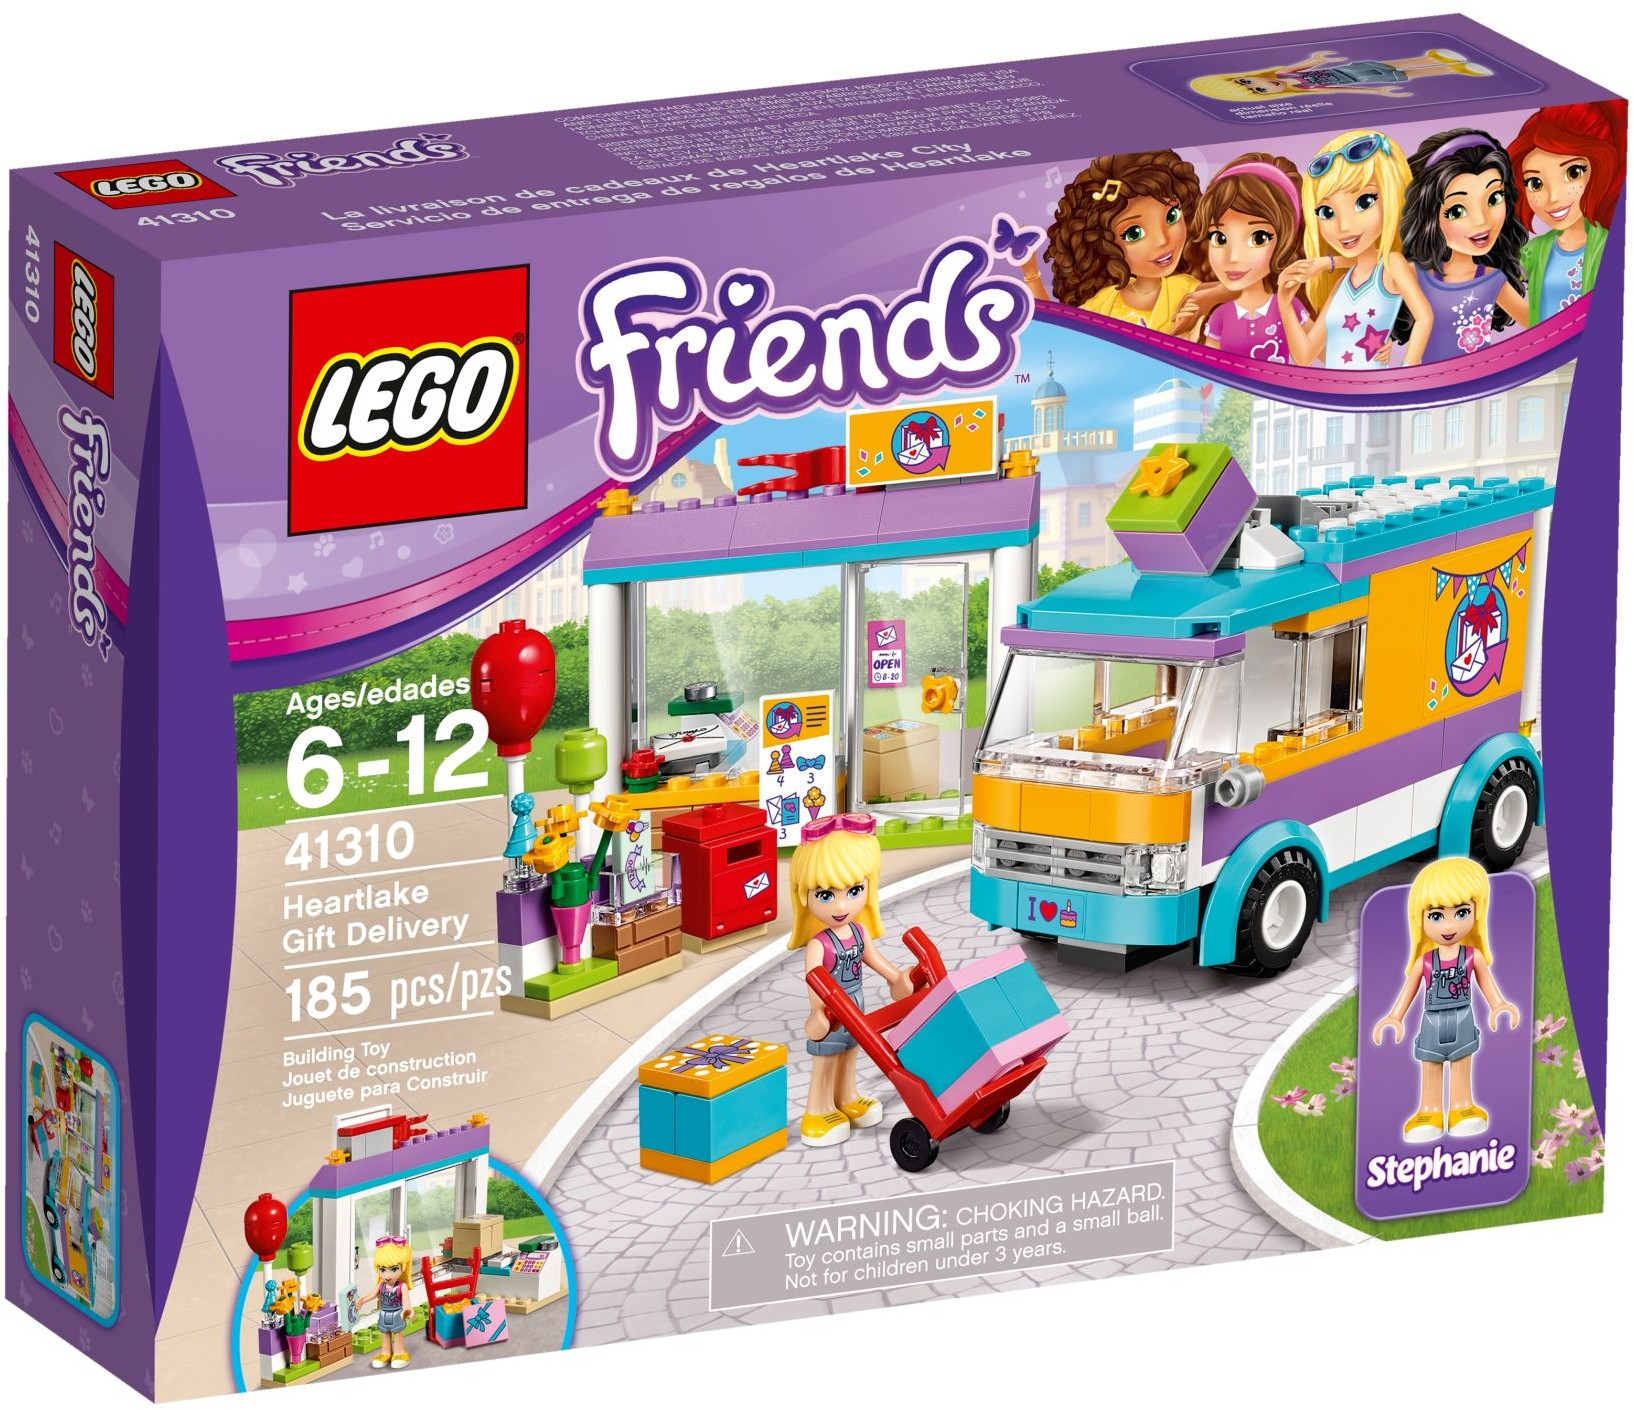 Heartlake Gift Delivery 41310 Lego Friends Wiki Fandom Powered